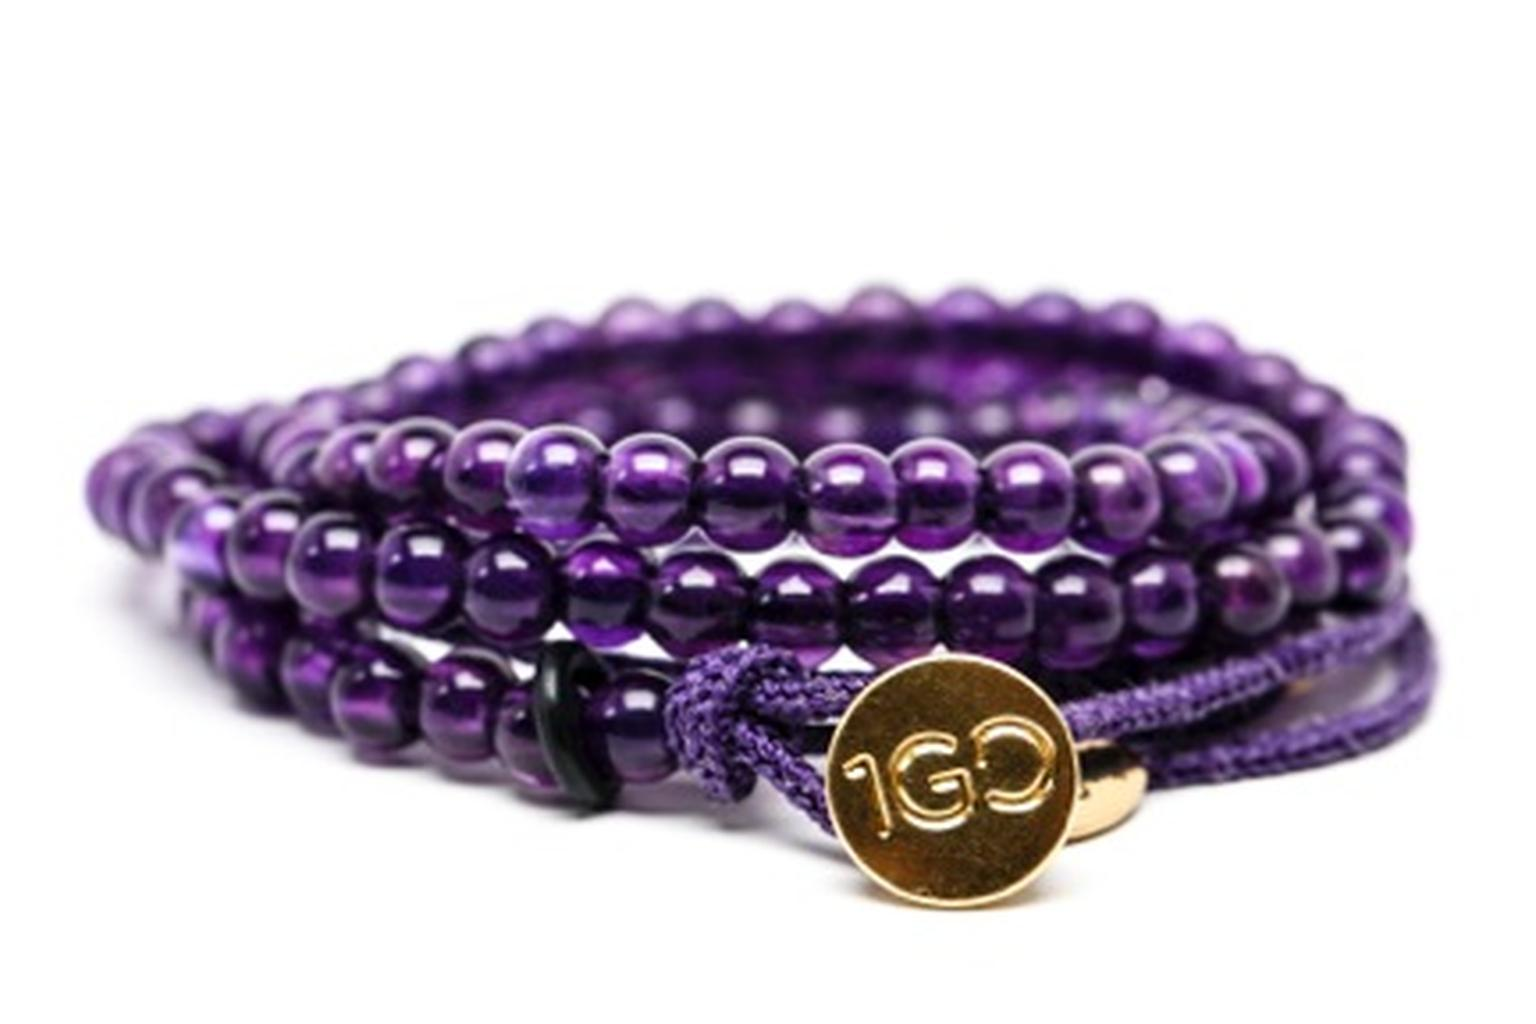 The Gemfields 100 Good Deeds bracelet is now available for purchase at www.100gooddeeds.org/gemfields.